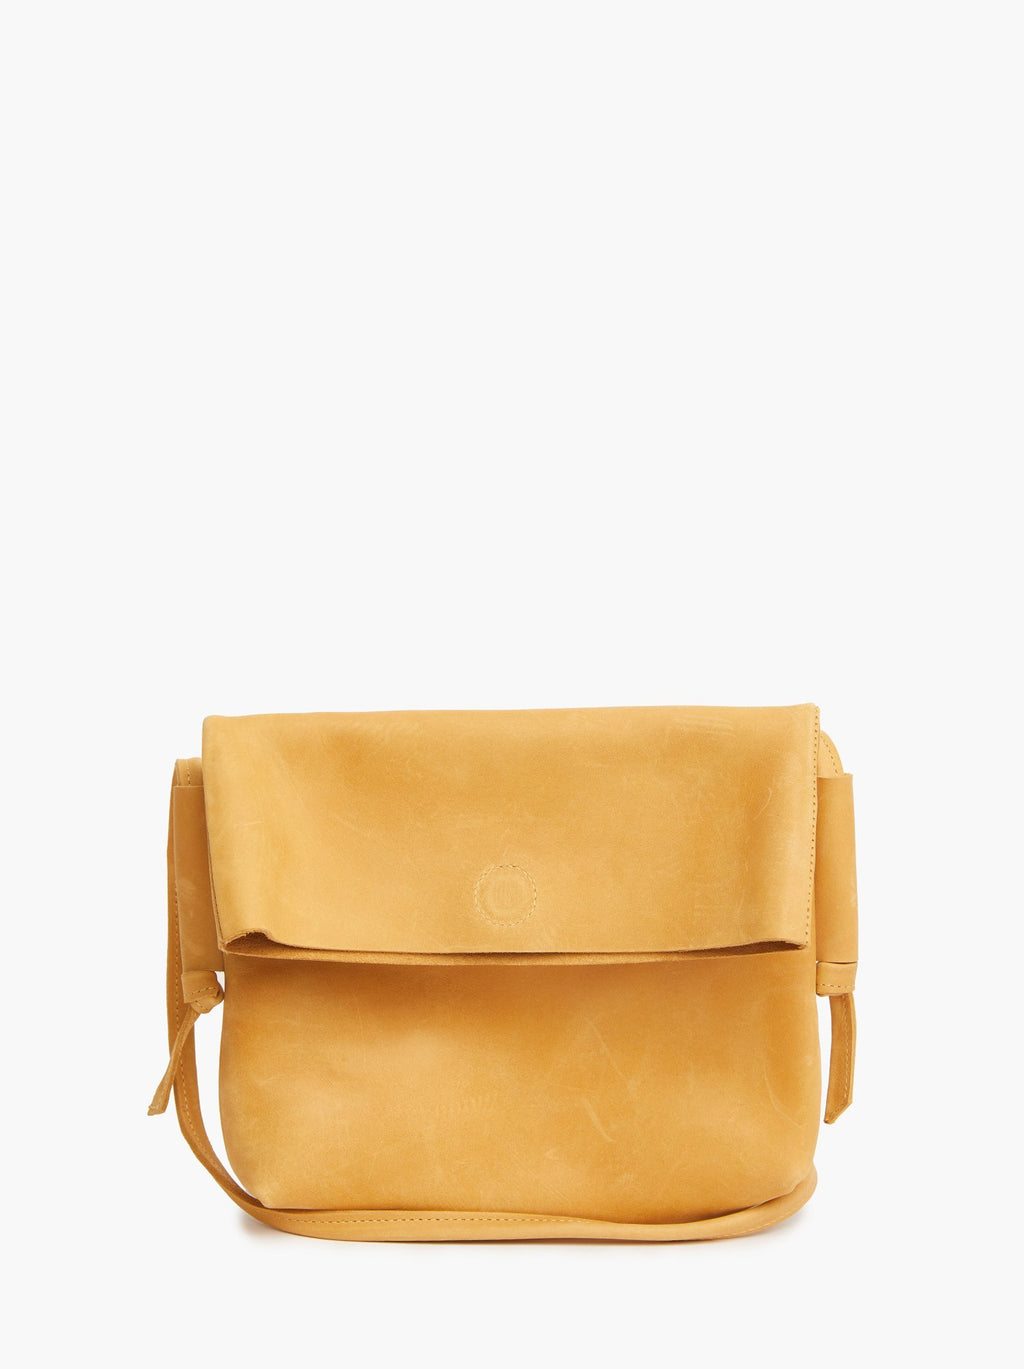 ABLE LOMI FOLDOVER CROSSBODY - Penny Lane Boutique